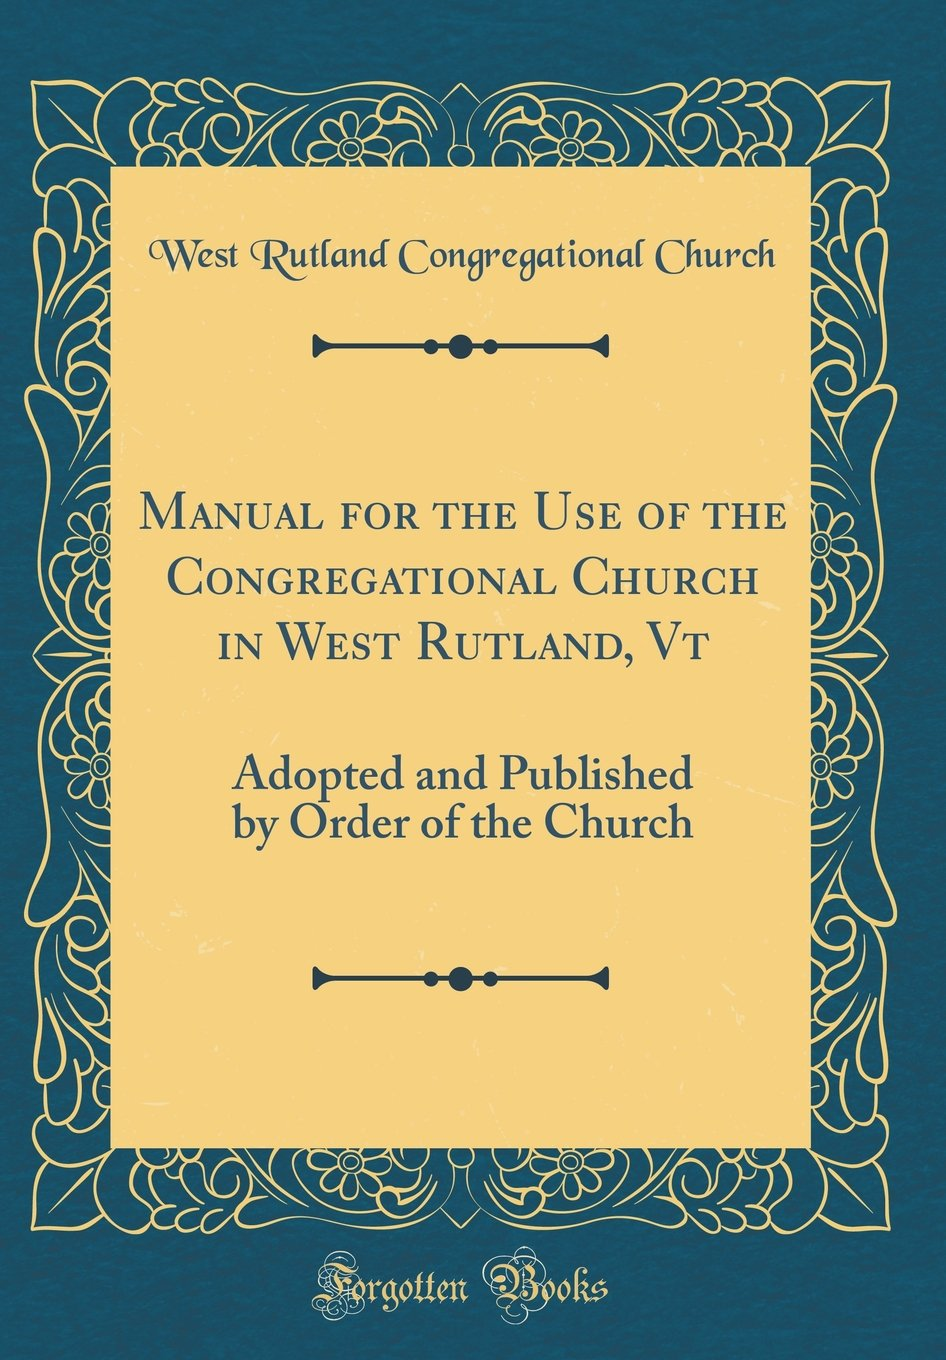 Manual for the Use of the Congregational Church in West Rutland, VT: Adopted and Published by Order of the Church (Classic Reprint) pdf